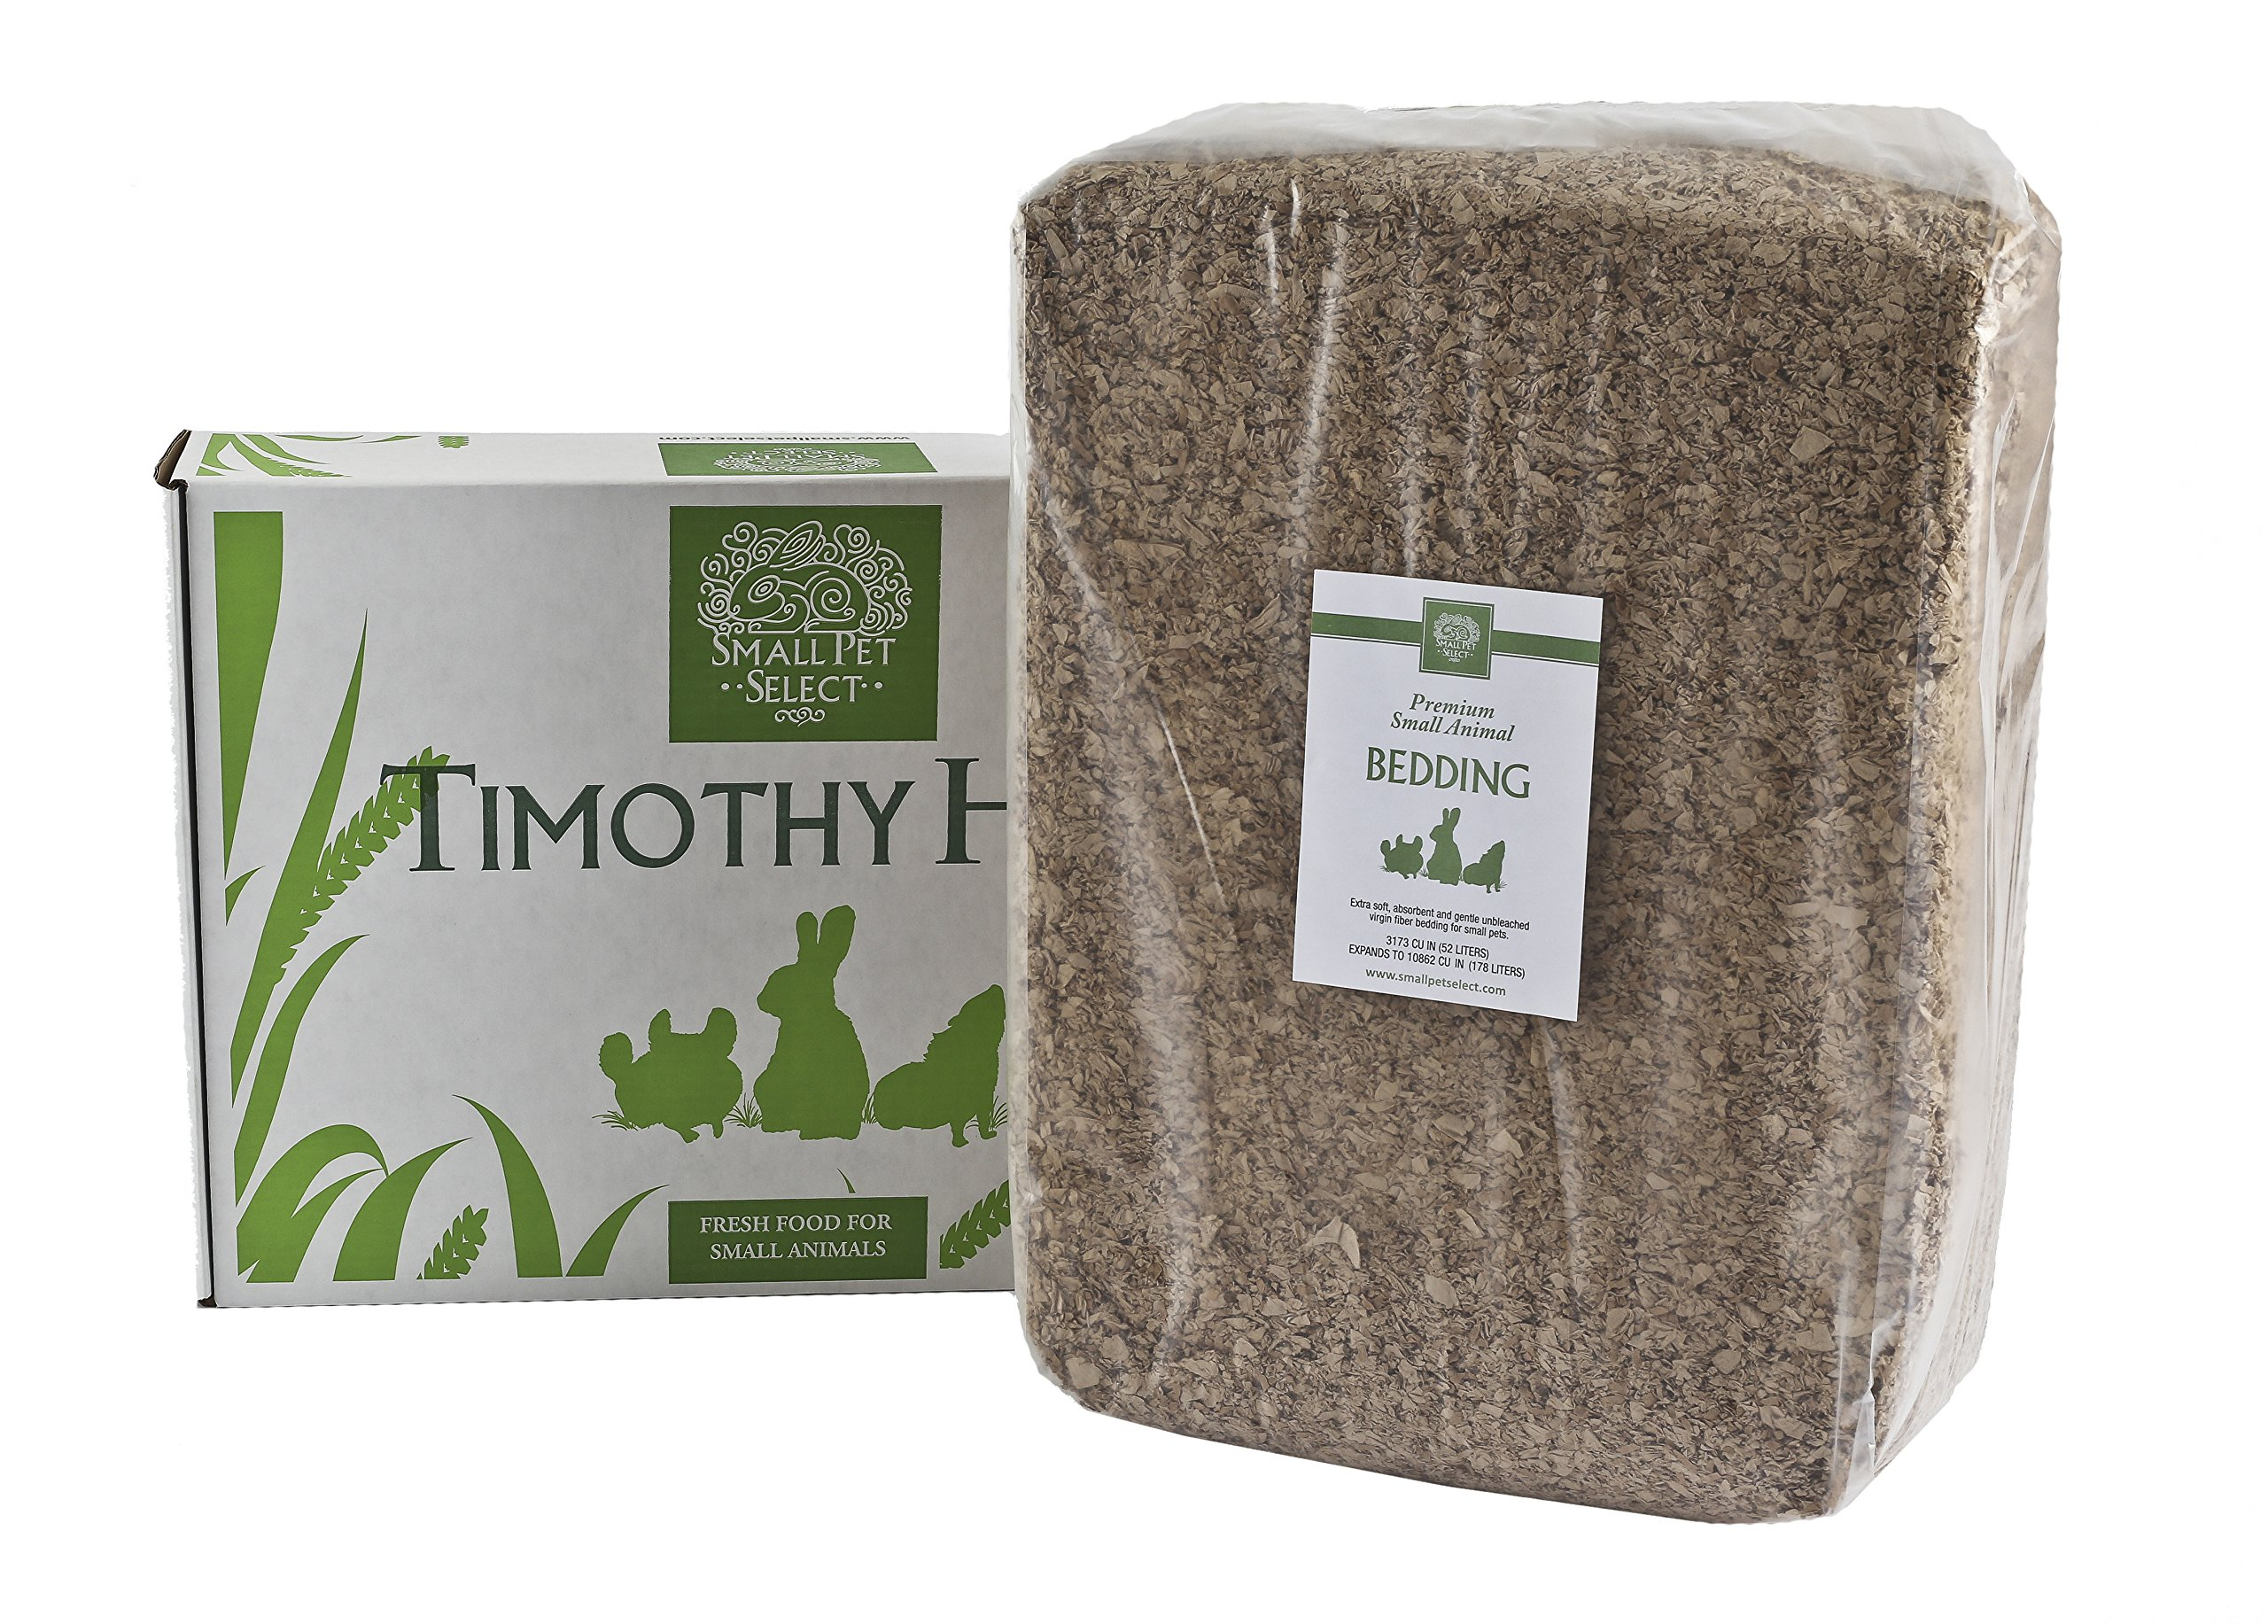 Small Pet Select Timothy Hay And Bedding Combo Pack: Timothy Hay (10 Lb.), Bedding (178L)